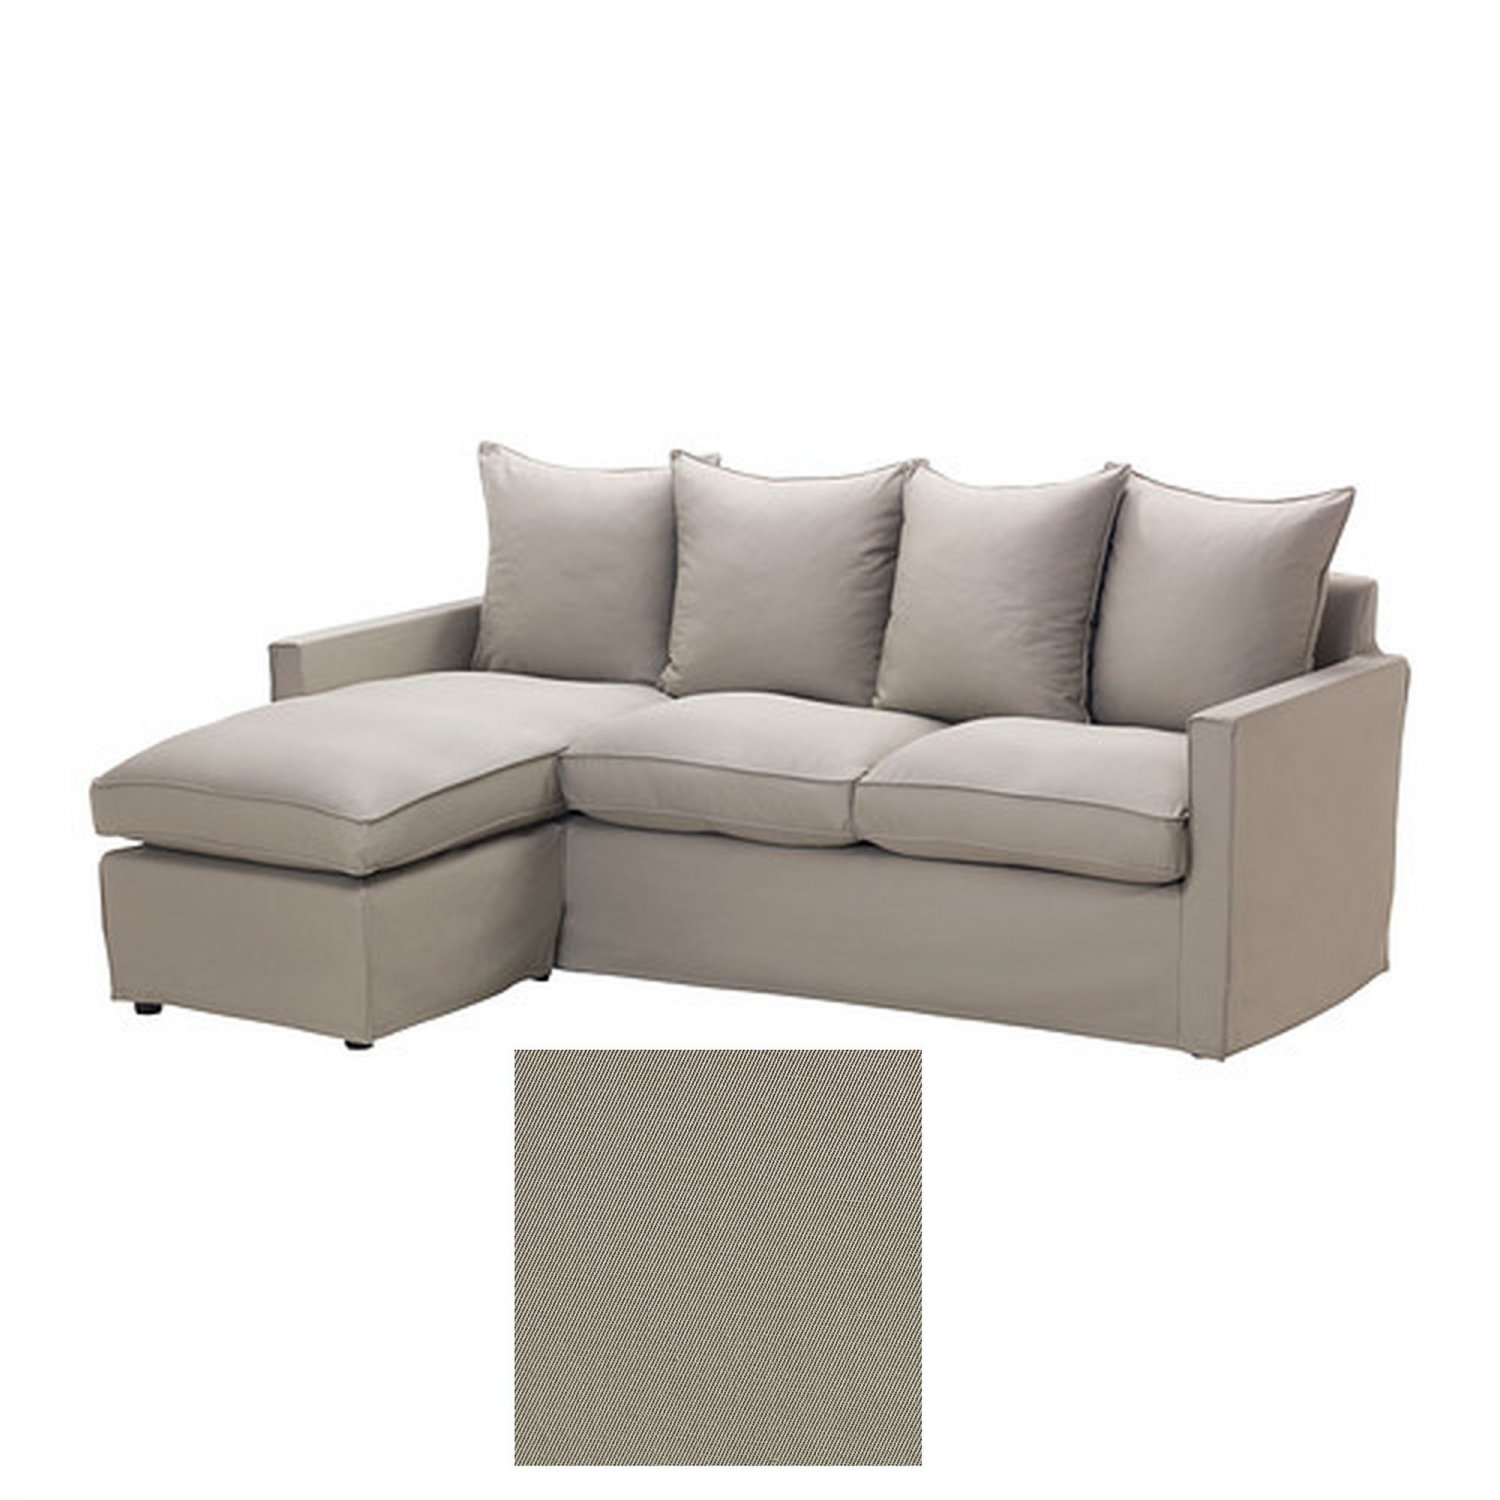 Ikea harnosand 2 seat loveseat sofa with chaise slipcover for 2 seater sofa with chaise